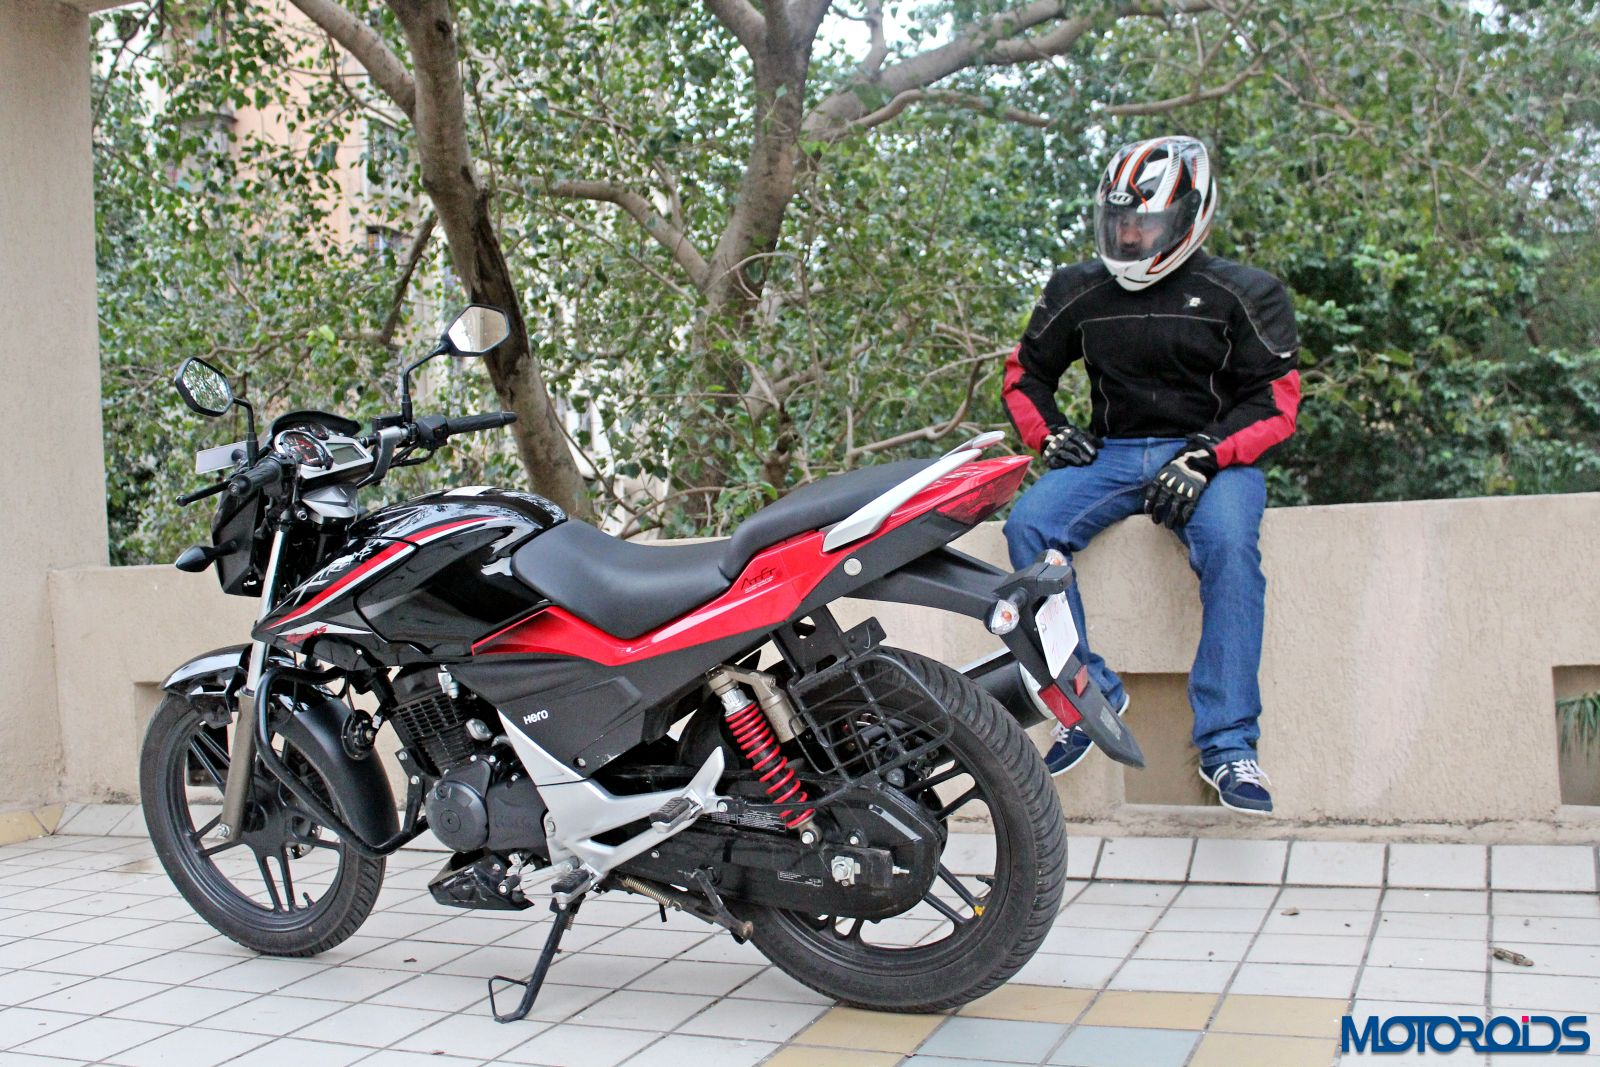 New 2015 Hero Xtreme Sports Review: Snazzy Step-Up | Motoroids